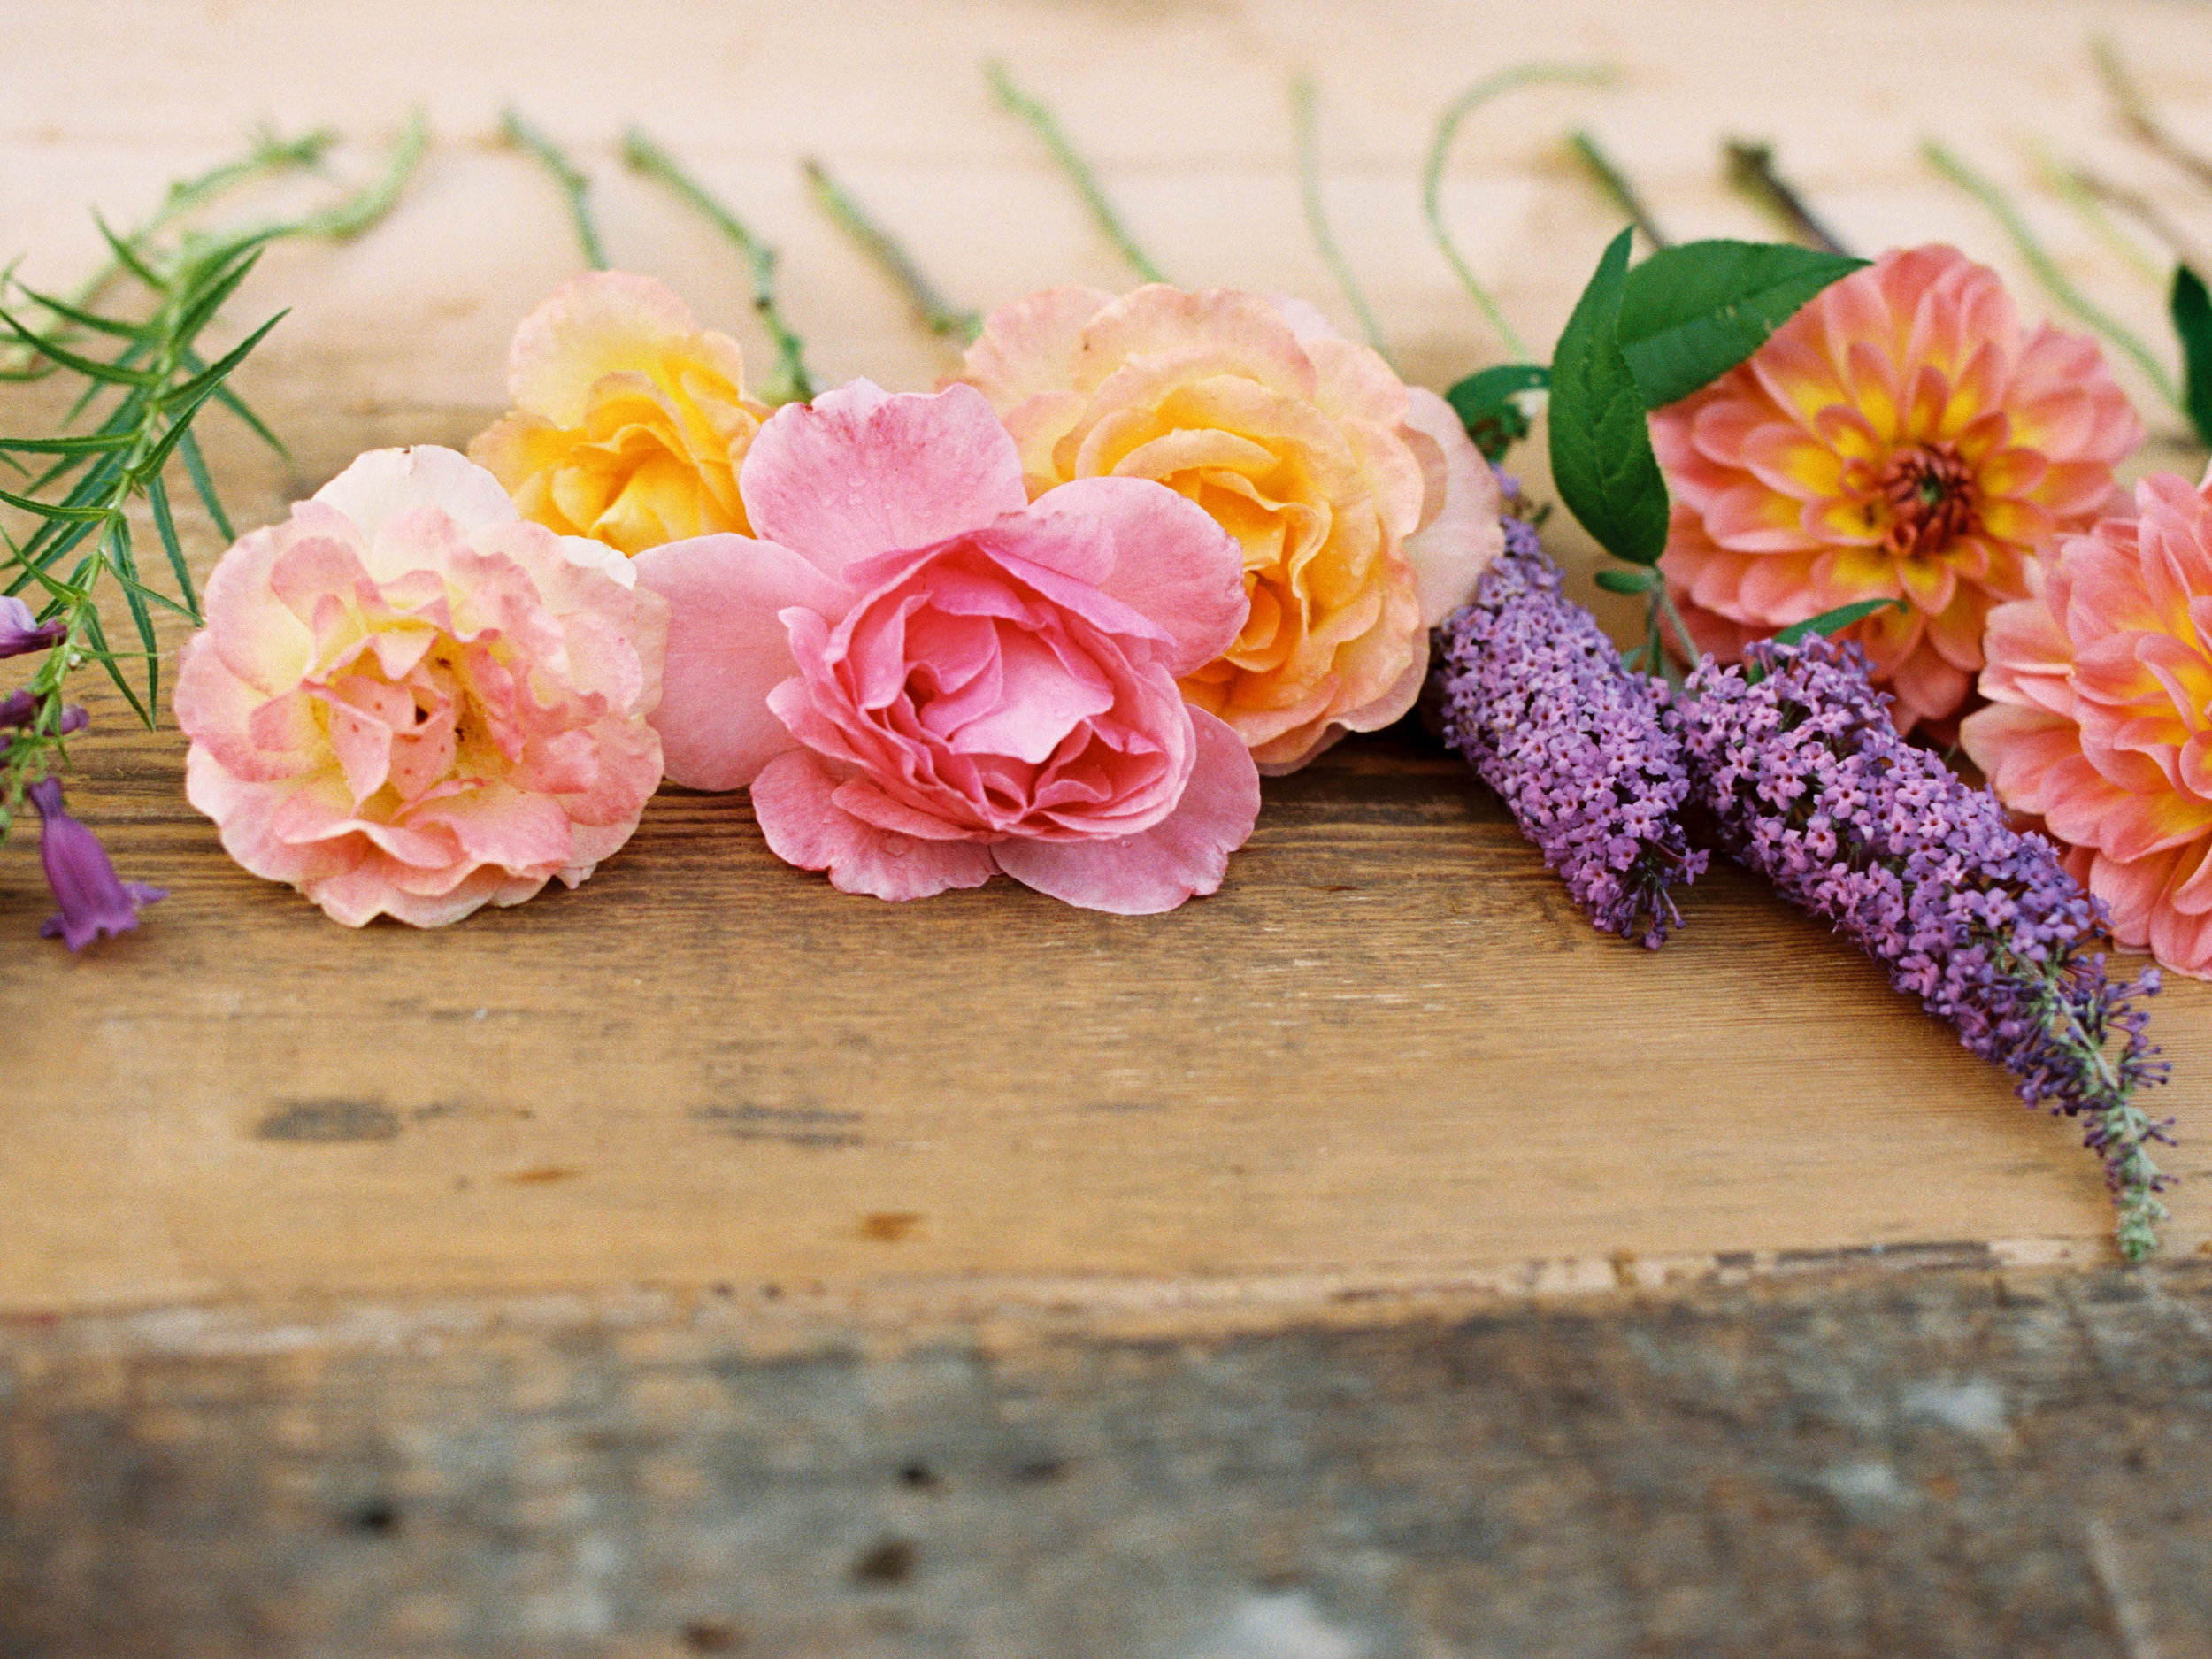 roses and dahlias in bright summer colors